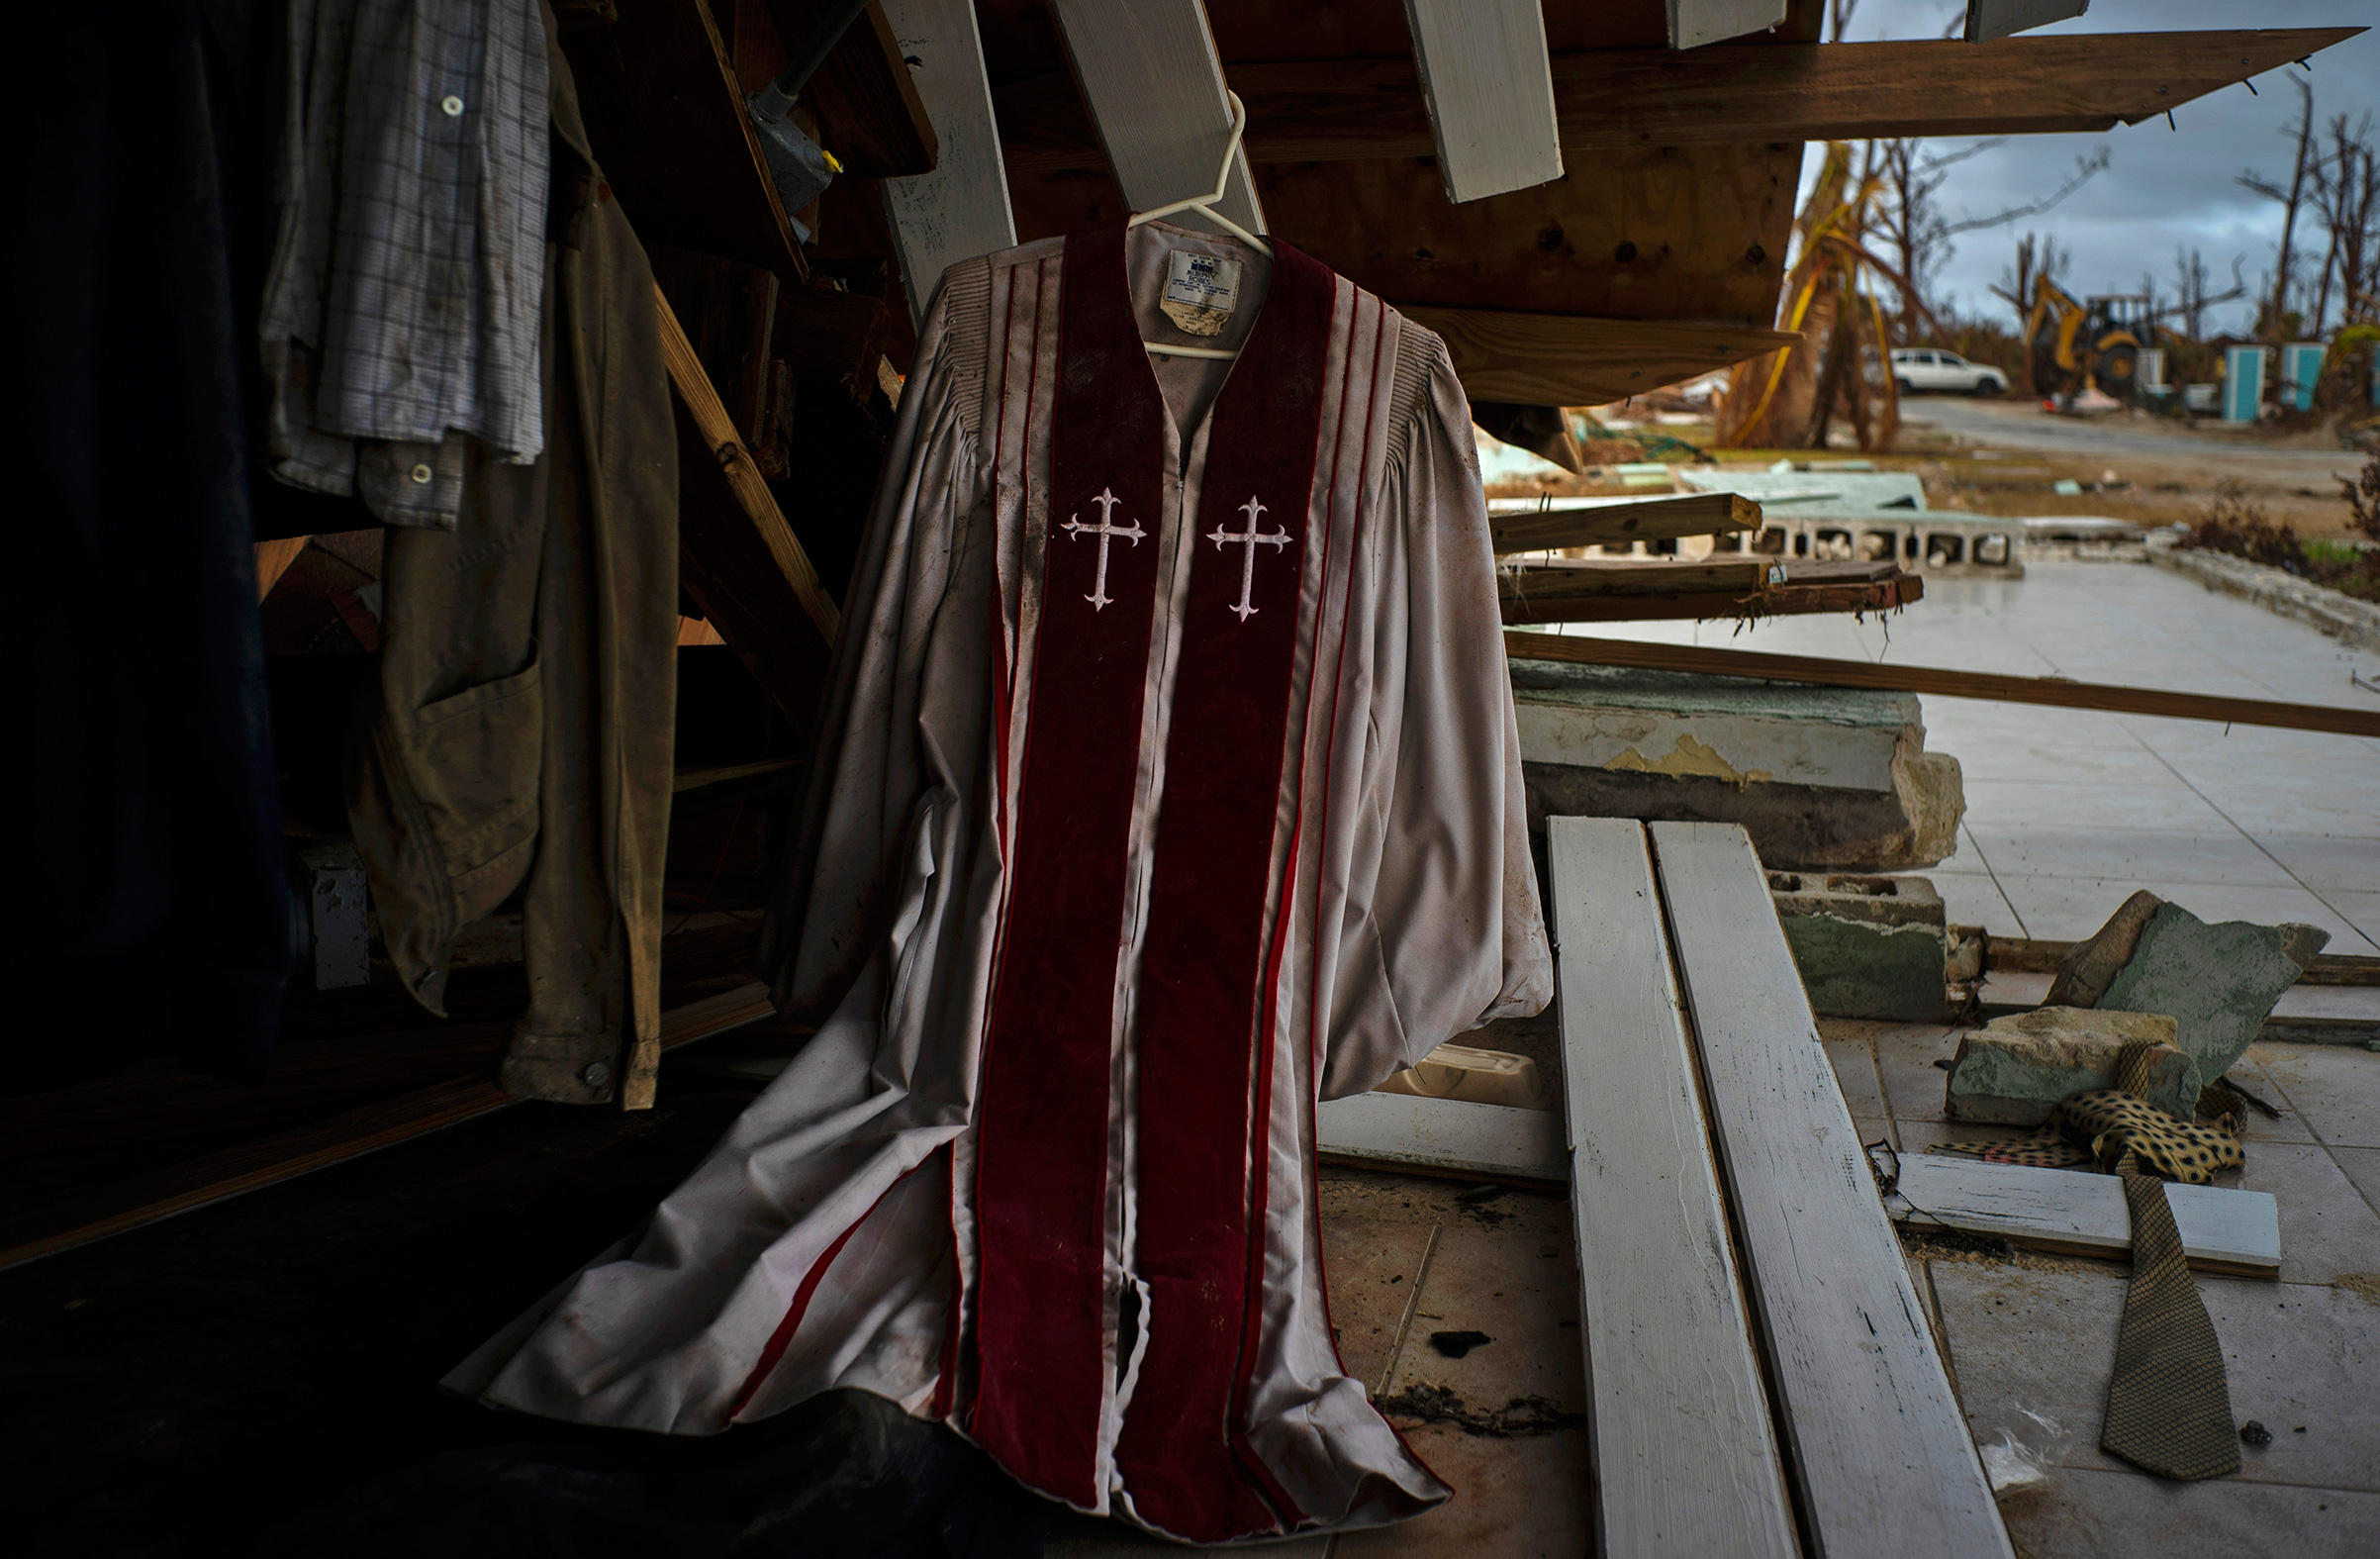 Priest's mass vestments hang in the rubble of a destroyed house by Hurricane Dorian in Pelican Point, Grand Bahama, Bahamas, Sept. 14, 2019.